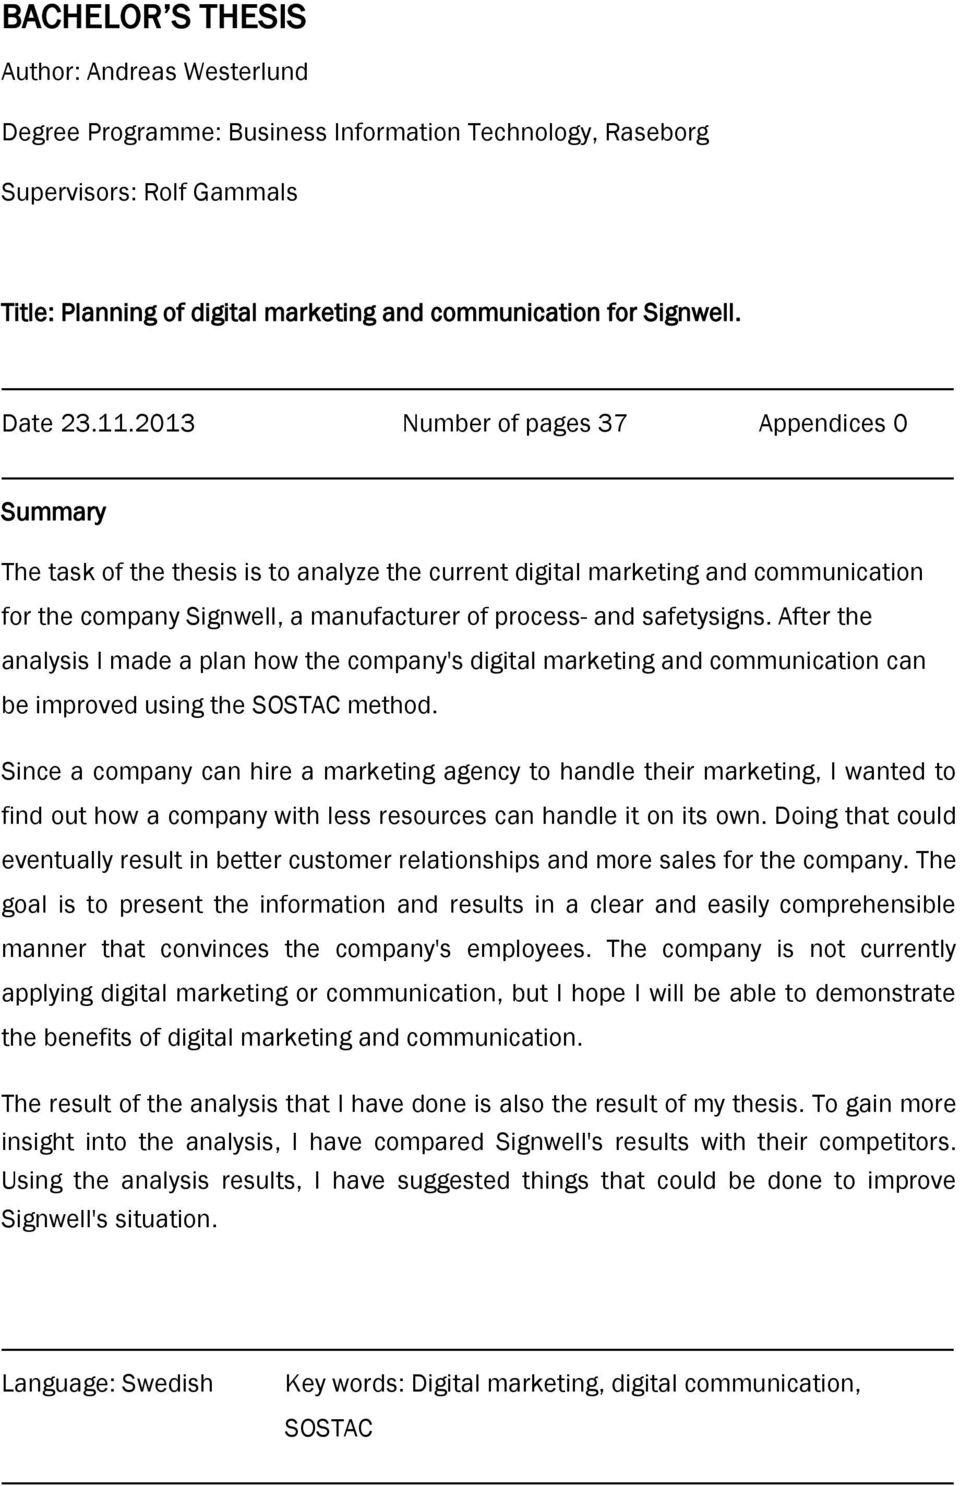 2013 Number of pages 37 Appendices 0 Summary The task of the thesis is to analyze the current digital marketing and communication for the company Signwell, a manufacturer of process- and safetysigns.